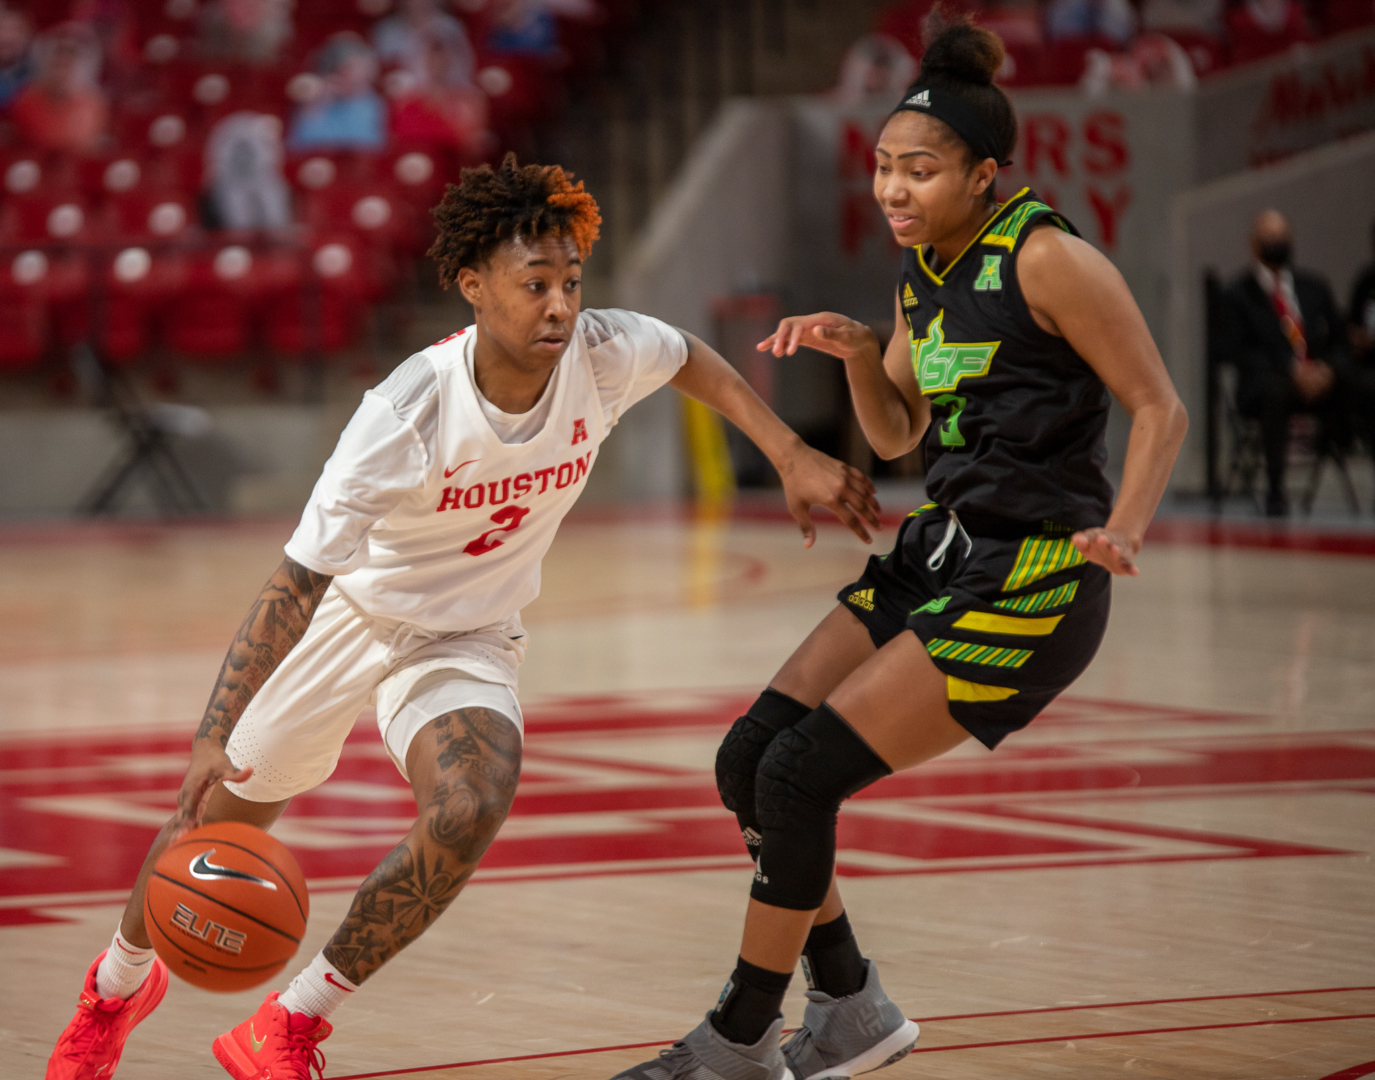 UH women's basketball guard Miya Crump (2) drives past a USF defender on Feb. 27 inside of Fertitta Center. Crump tied an AAC-record with six steals on Tuesday during the UH women's basketball team's game against ECU. | Andy Yanez/The Cougar